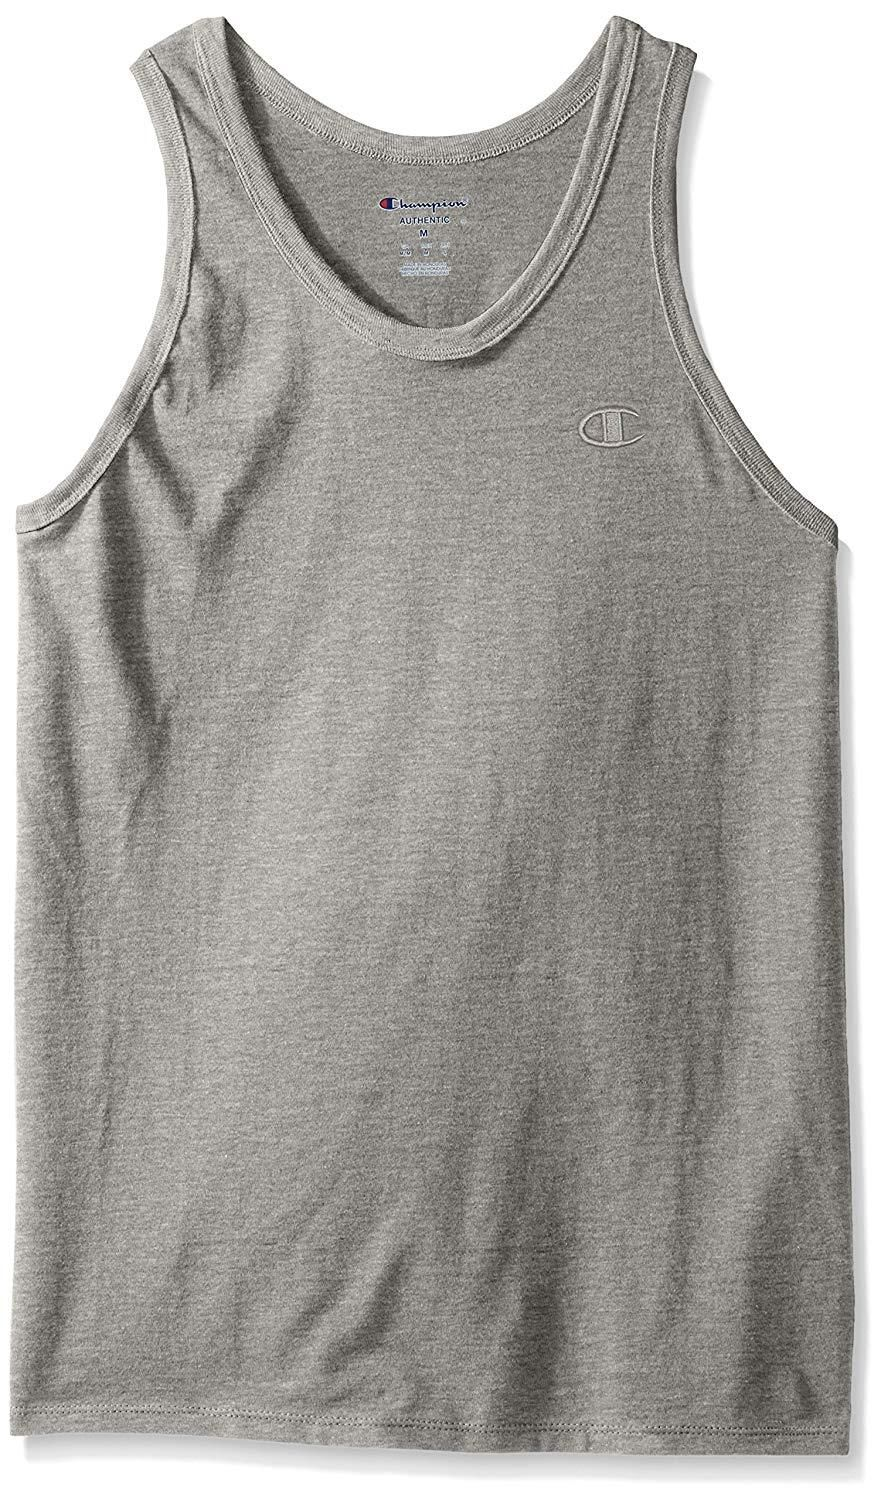 40d550d65 Champion Men's Classic Jersey Ringer Tank Top in 2019 | Products ...